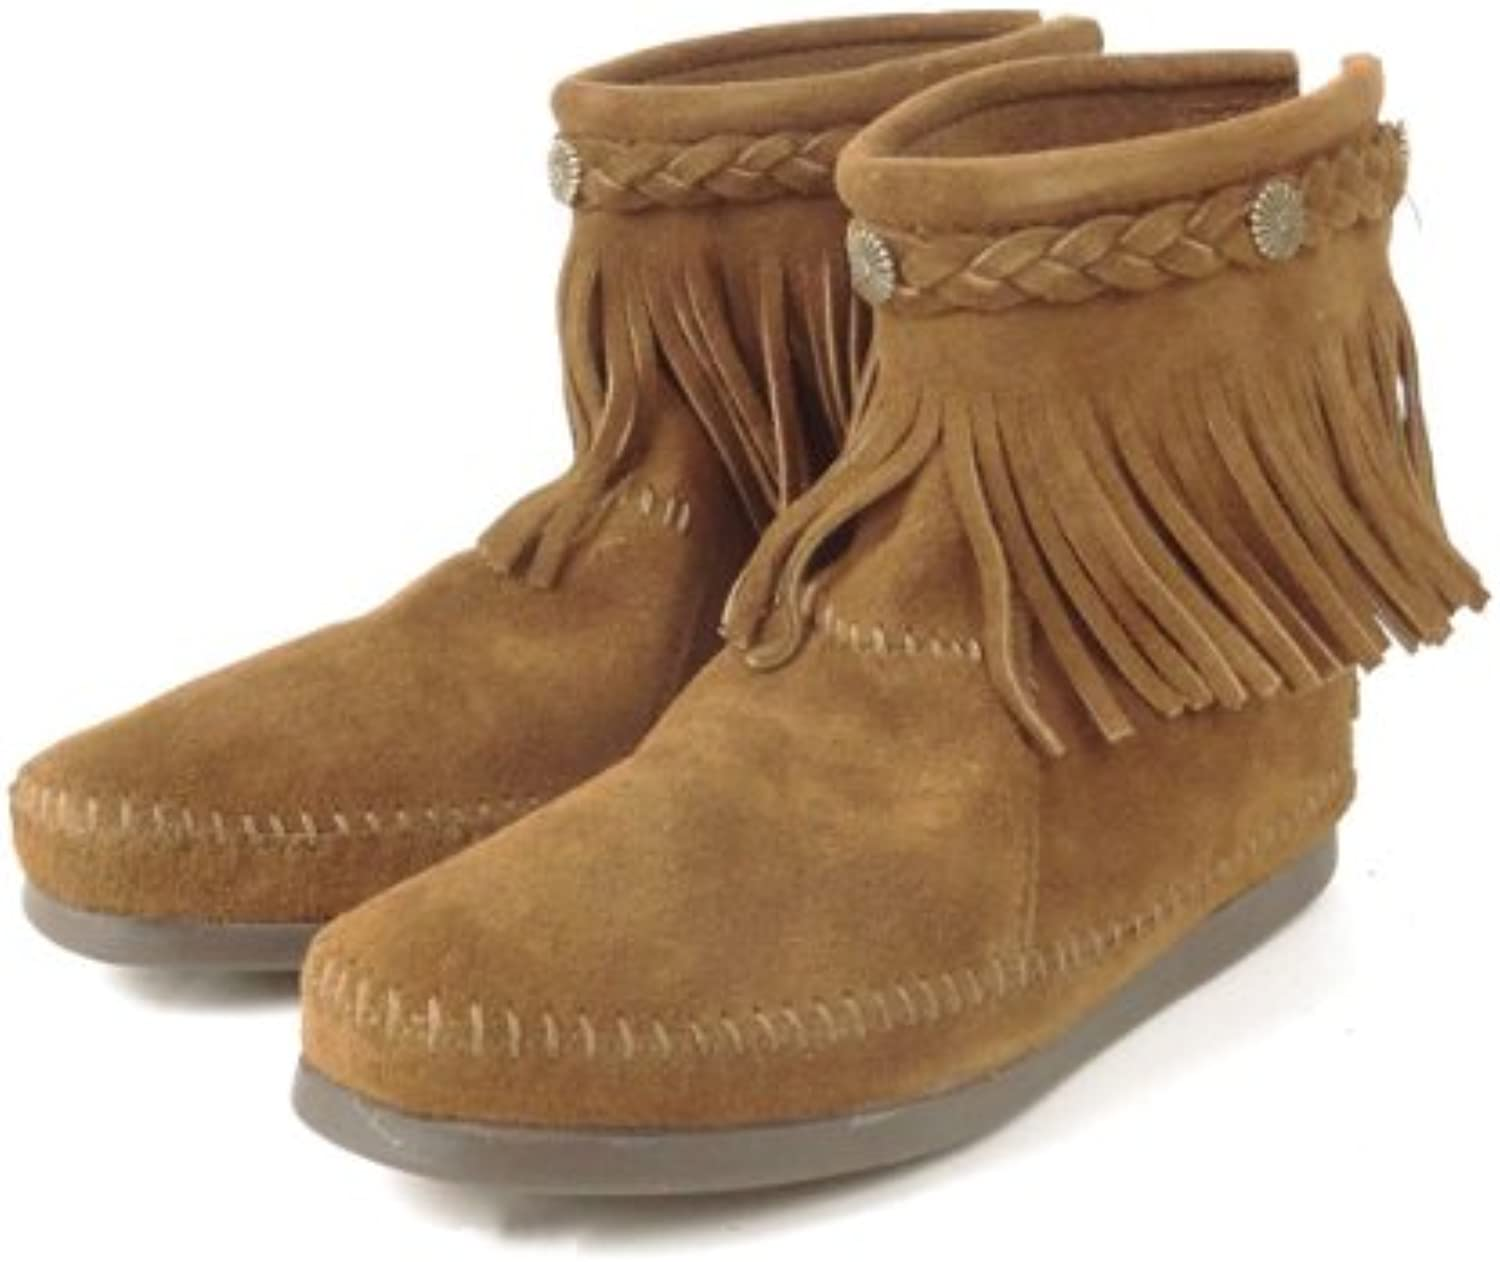 Minnetonka] High Top Back Zip Ladies Moccasin Boots 6 (22.5-23.0cm) 293 Dusty Brown